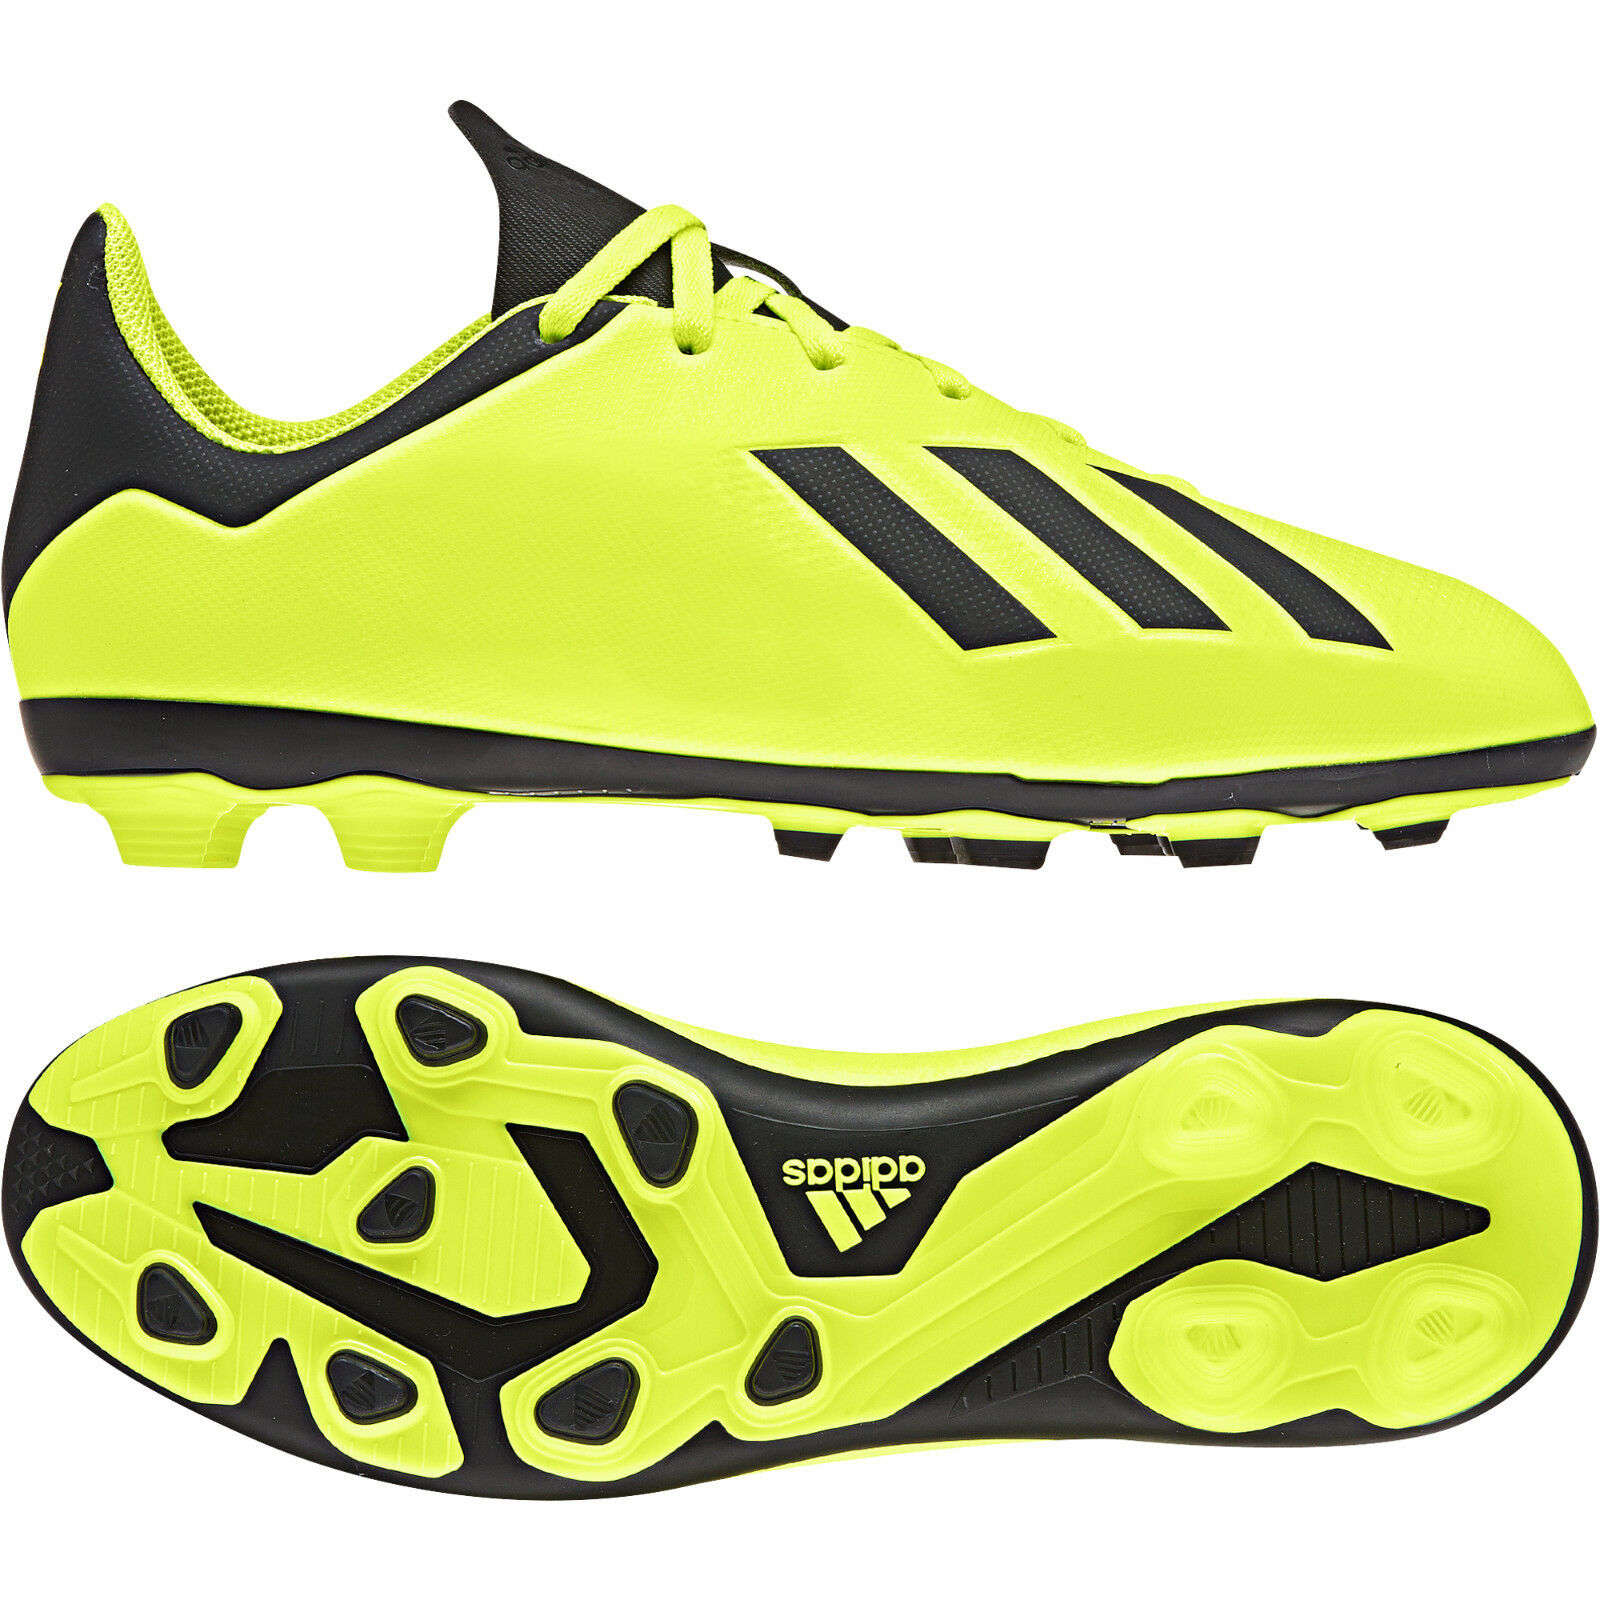 b0054406d Adidas Kids shoes Boys Soccer X 18.4 Flexible Ground Football Boots DB2420  New